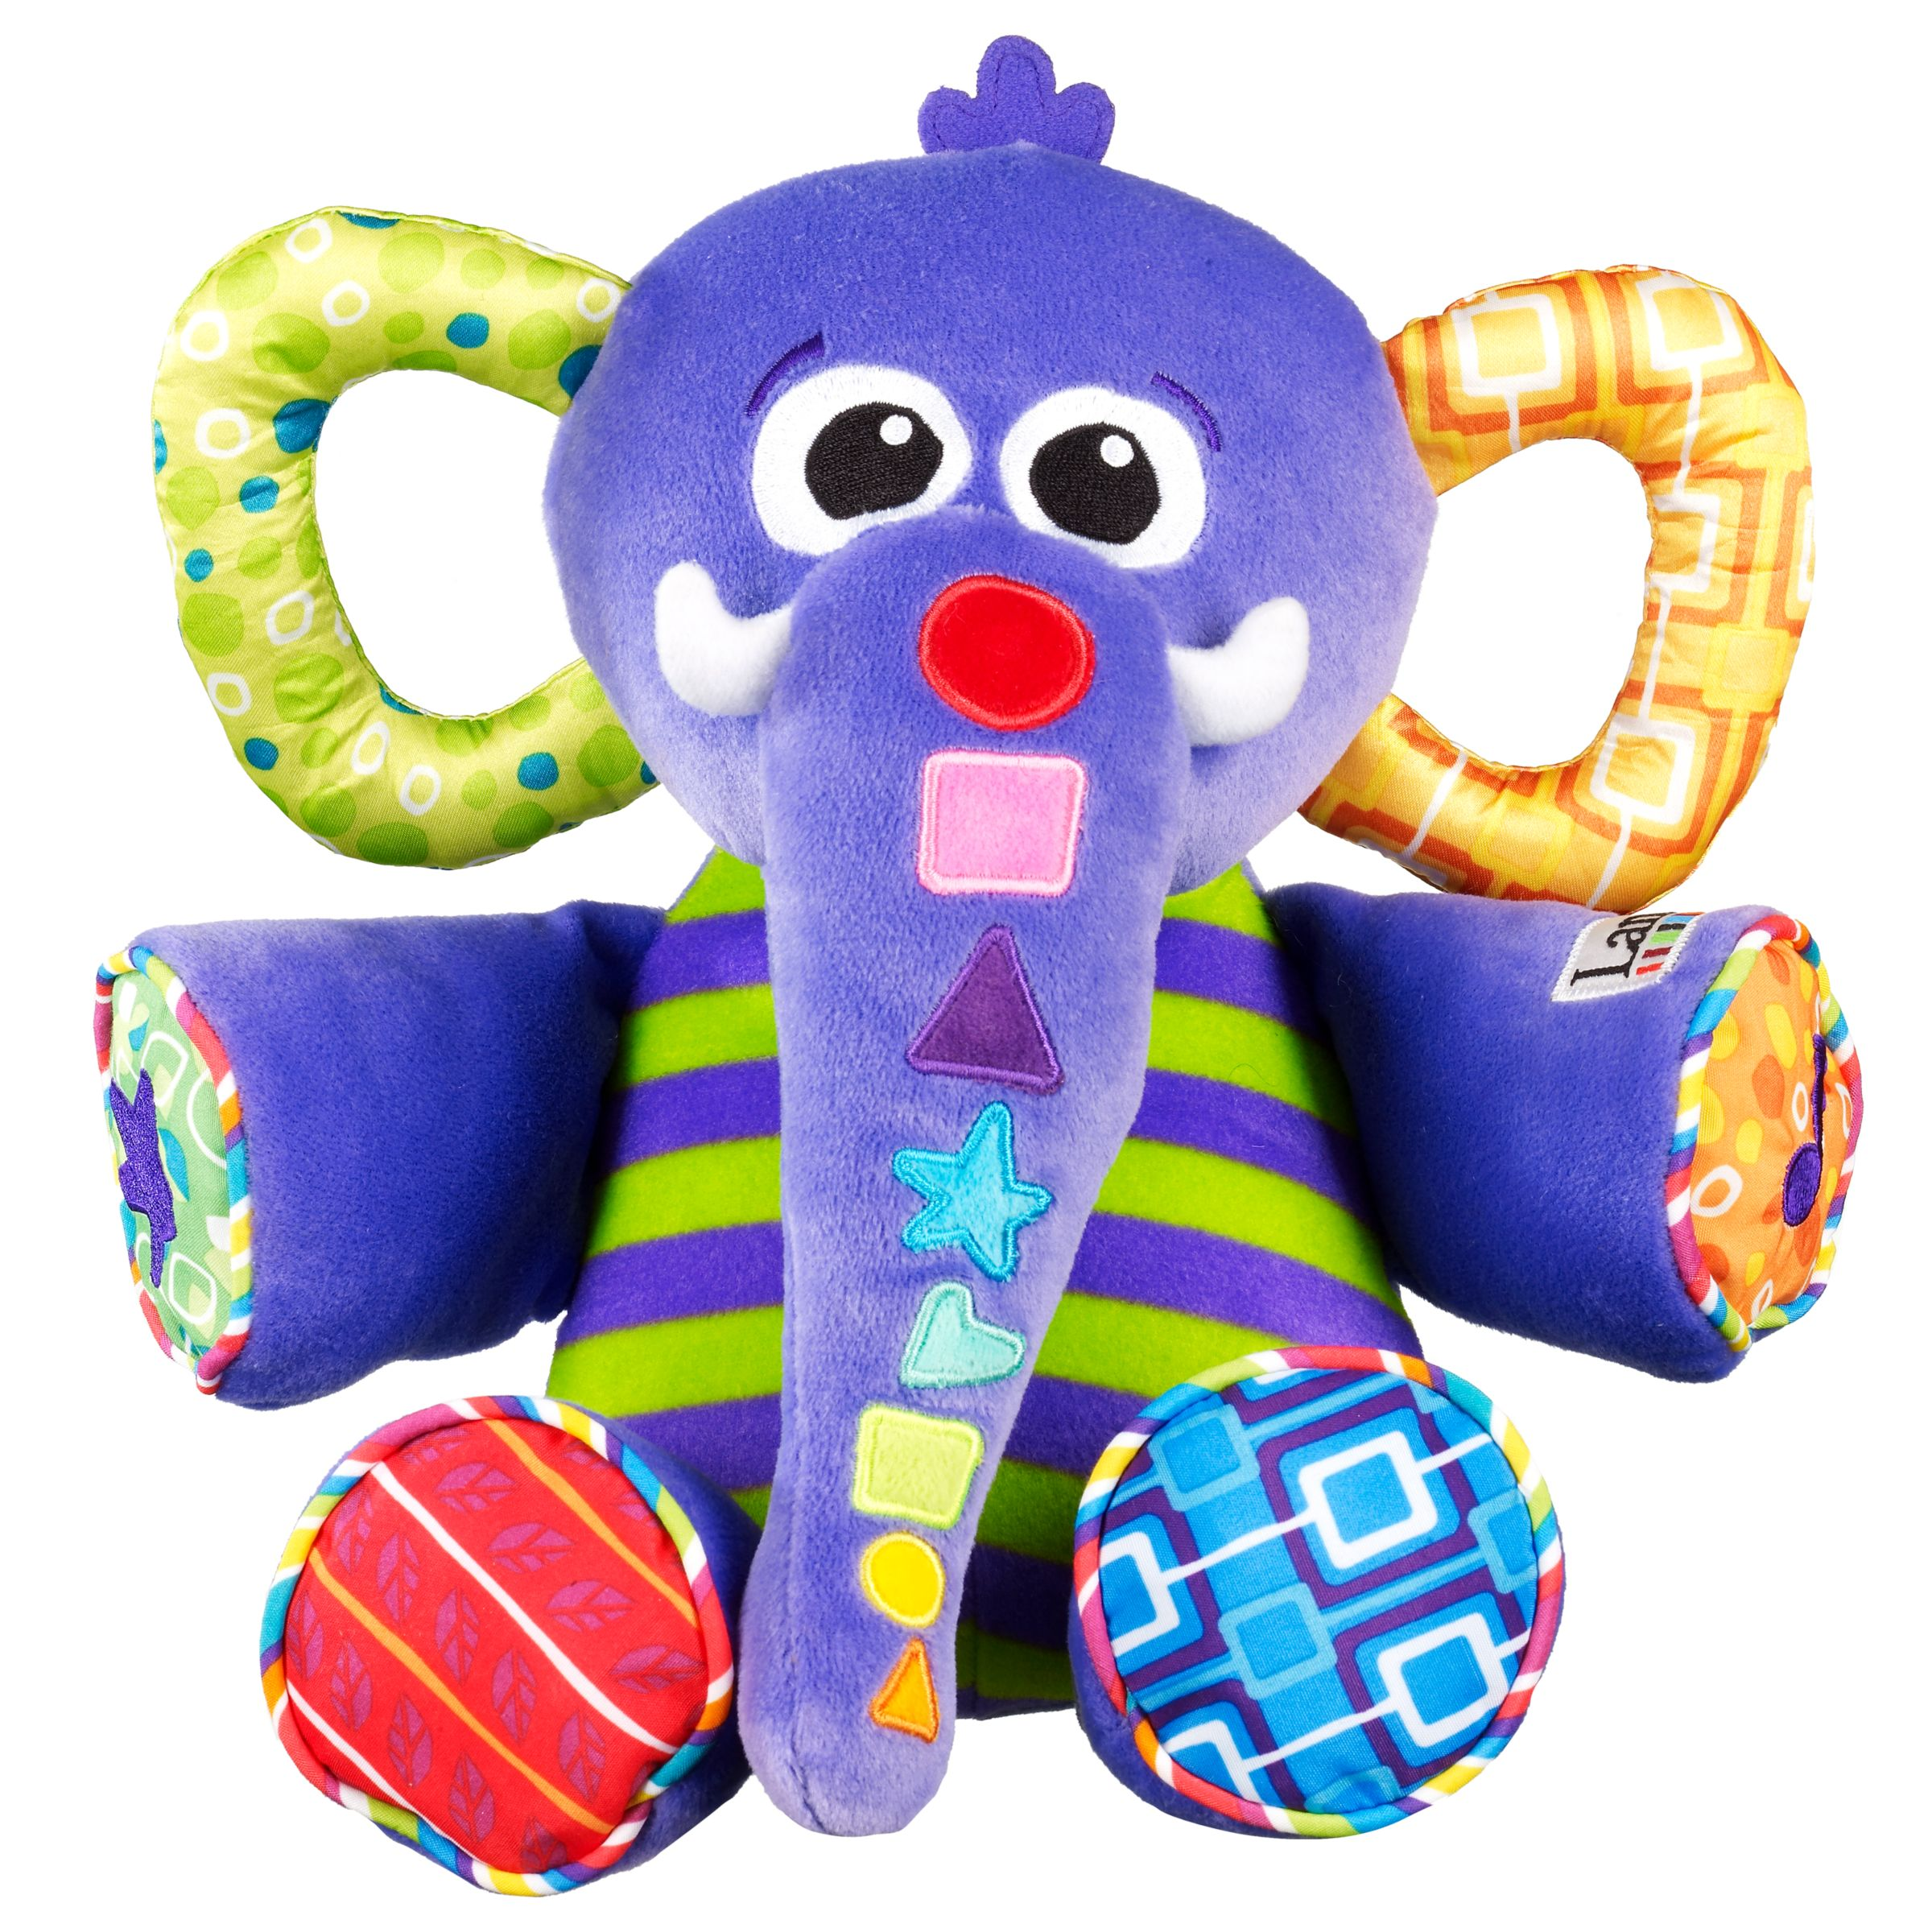 eddie the elephant The entire range of lamaze toys and lamaze baby toys the lamaze eddie the elephant tunes toy is packed full with education for your child's development and skills.